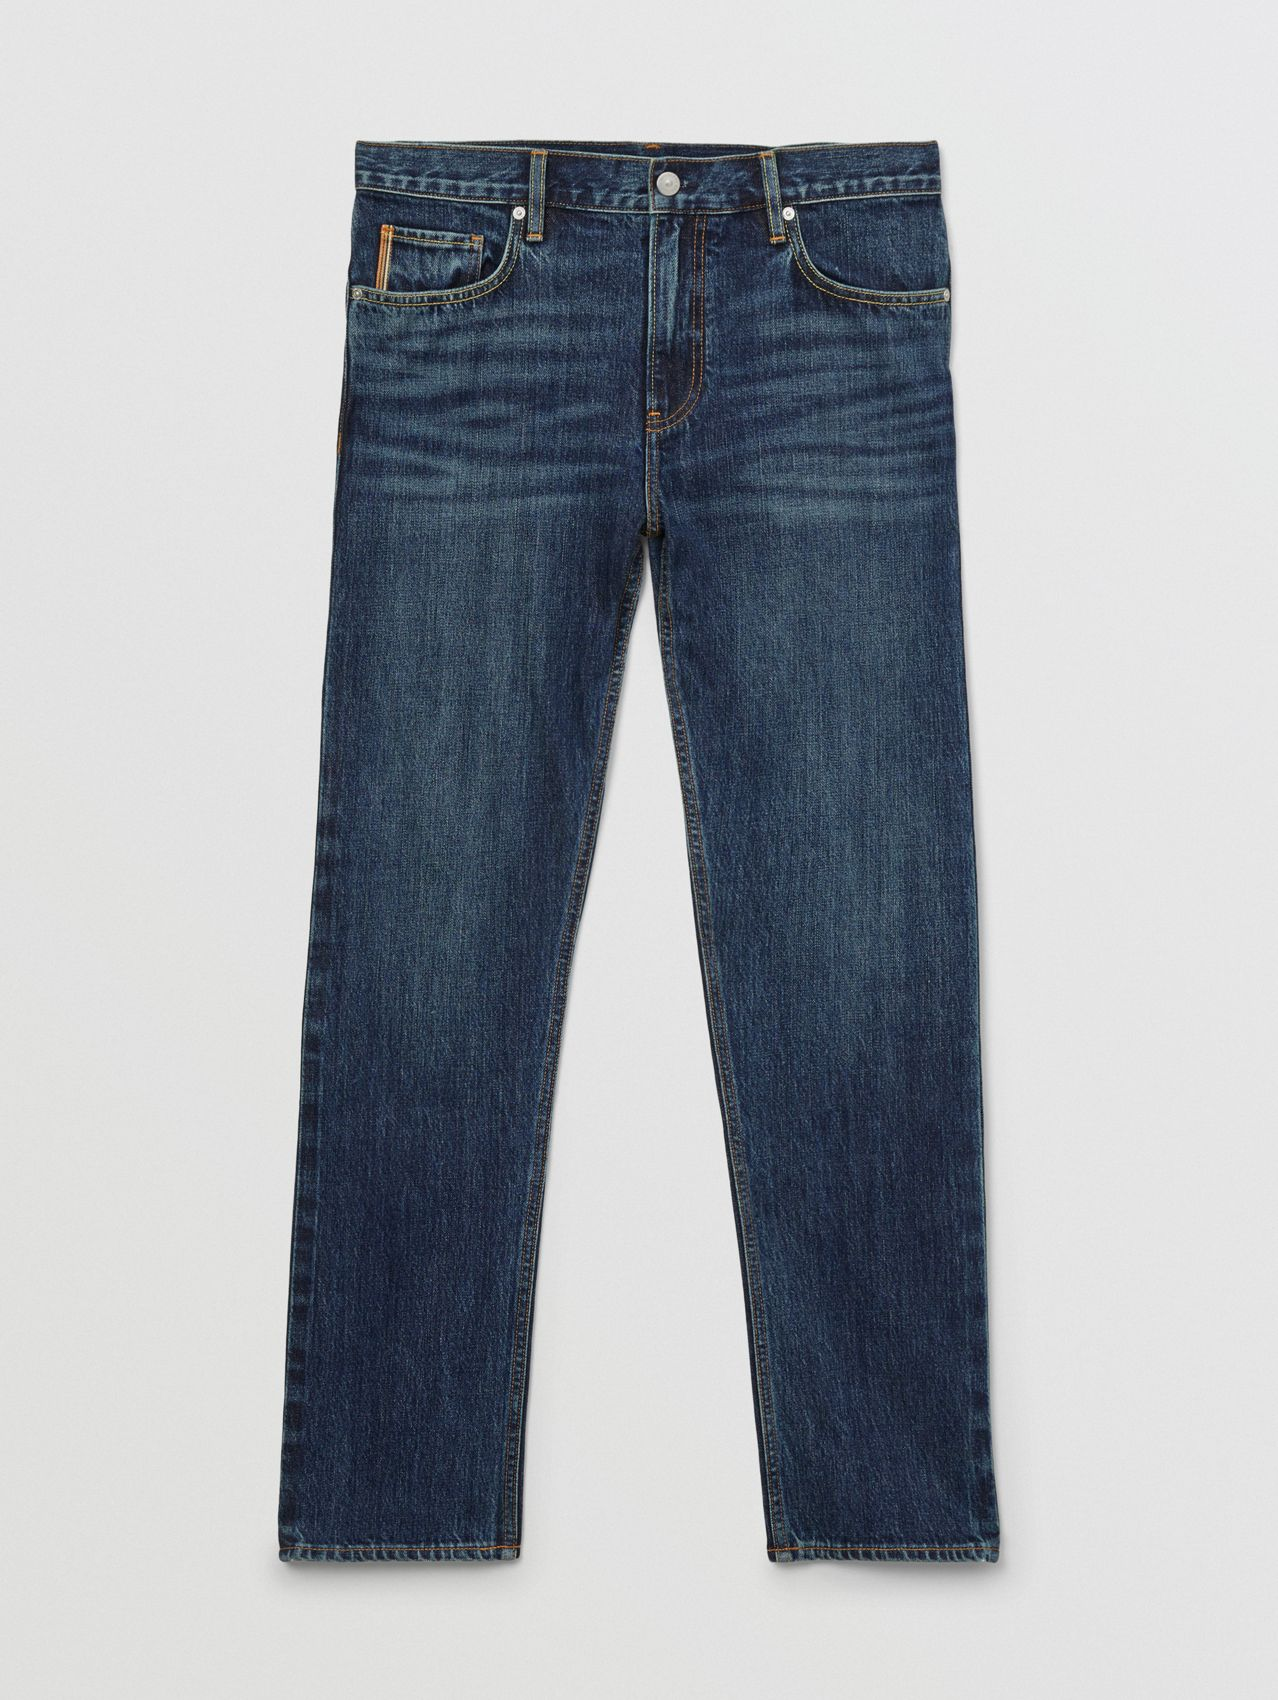 Straight Fit Japanese Selvedge Denim Jeans